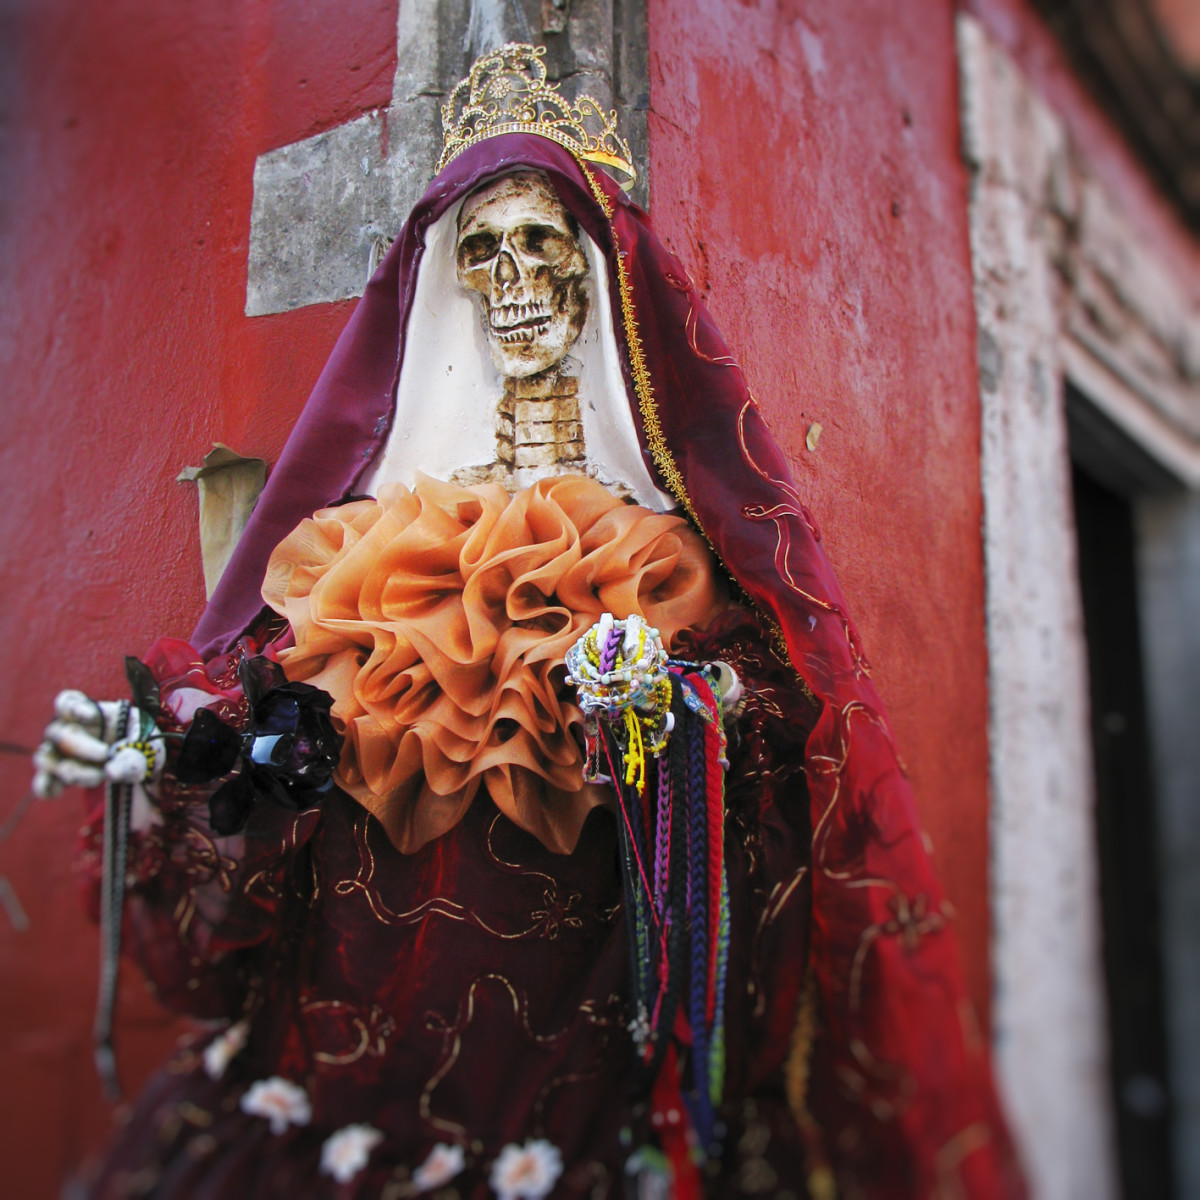 La Santisima Muerte is the Goddess of Death.  Her image should be feminine ... the more feminine and beautiful, the better.